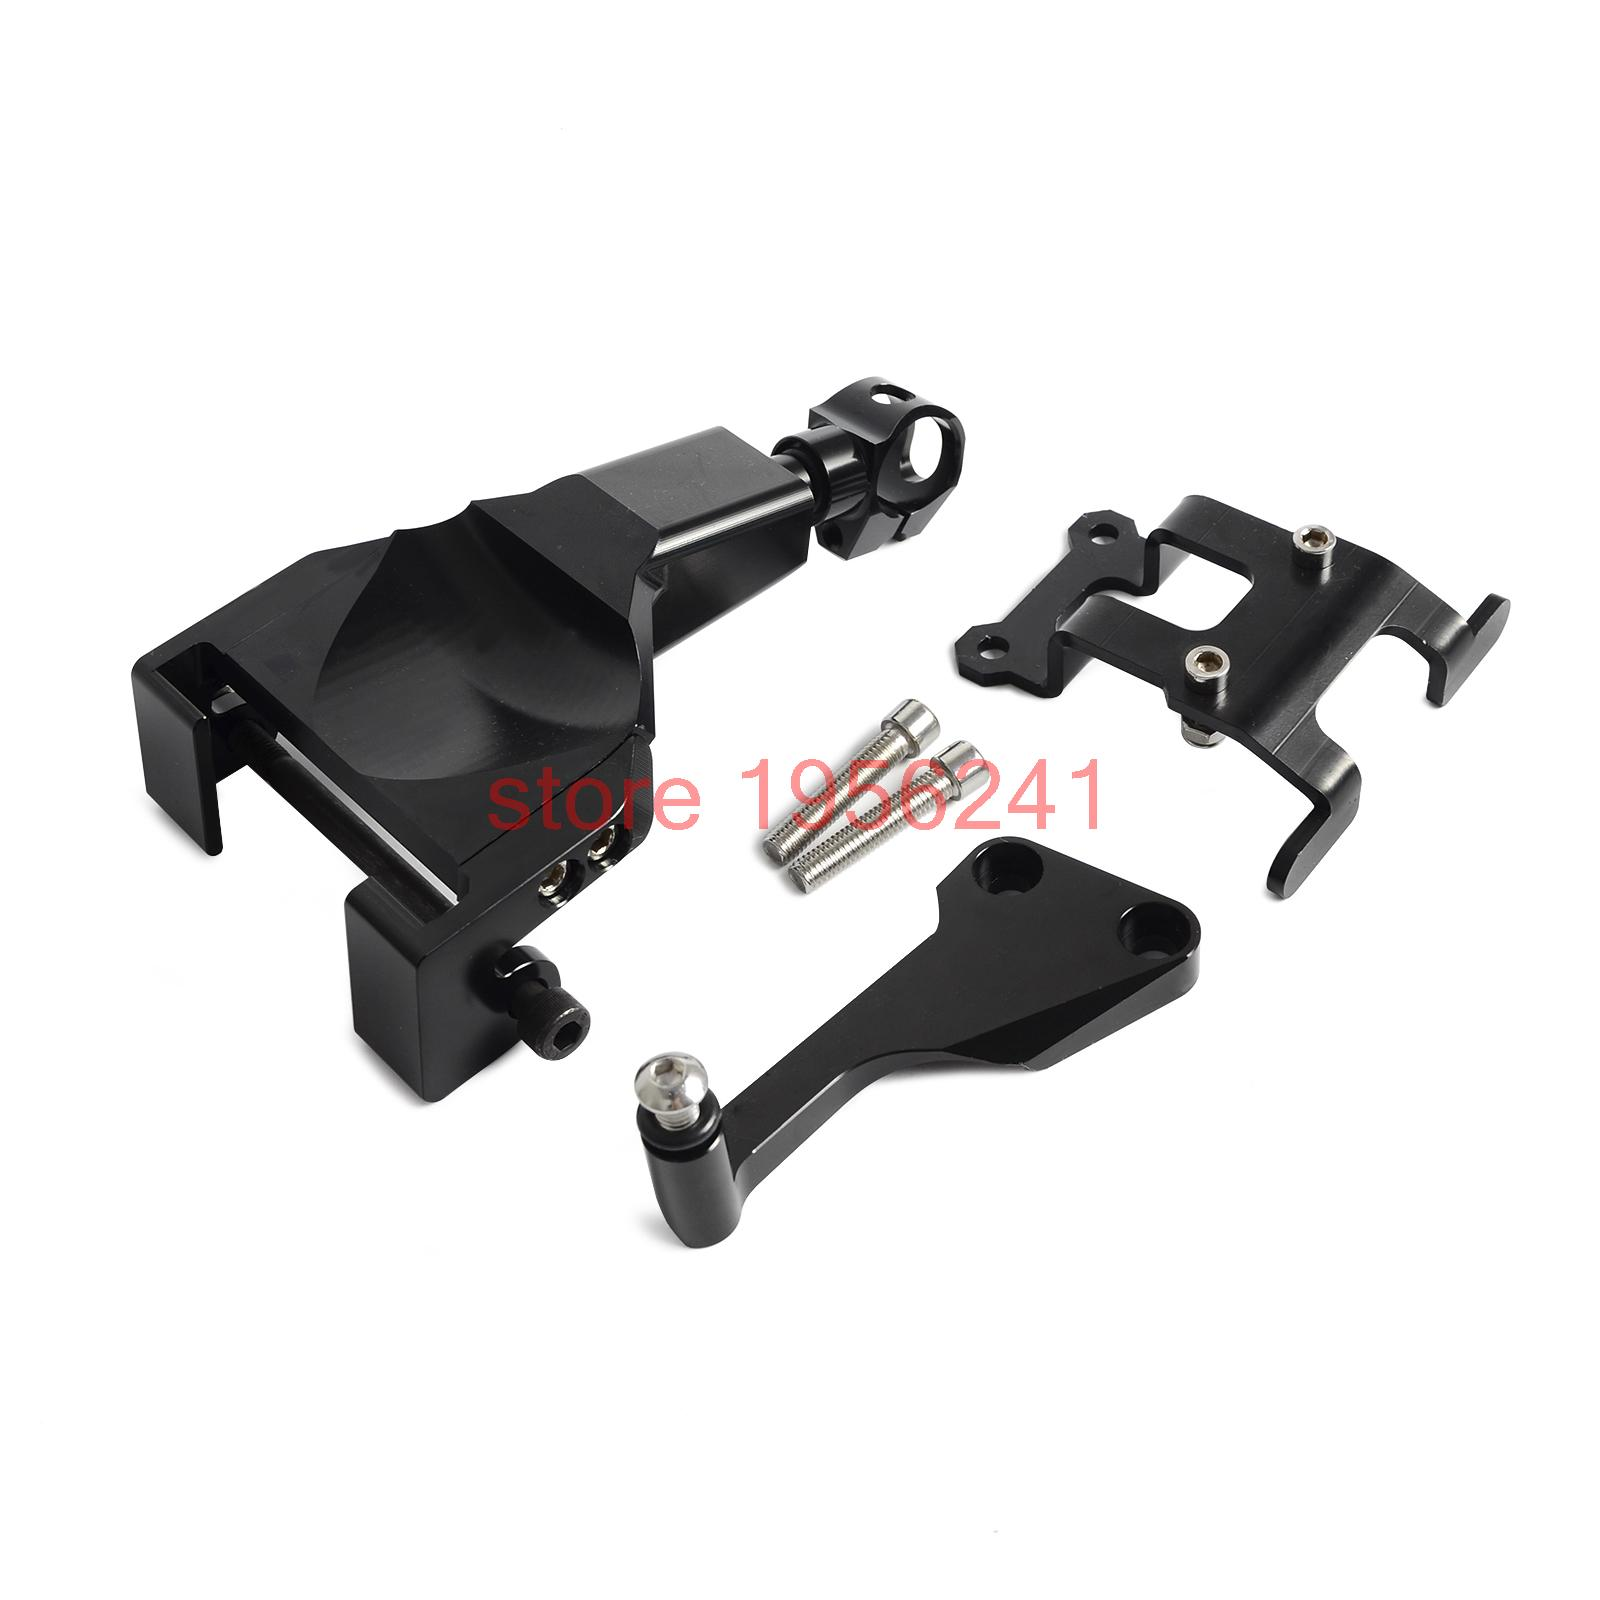 Black Motorcycle Stablizer Damper Mounting Bracket Kit For Yamaha MT-07 MT07 MOTO CAGE 2014 2015 2016 motorcycle cnc aluminum windscreen windshield mounting bracket for yamaha mt07 mt 07 2014 2015 2016 red new style with logo